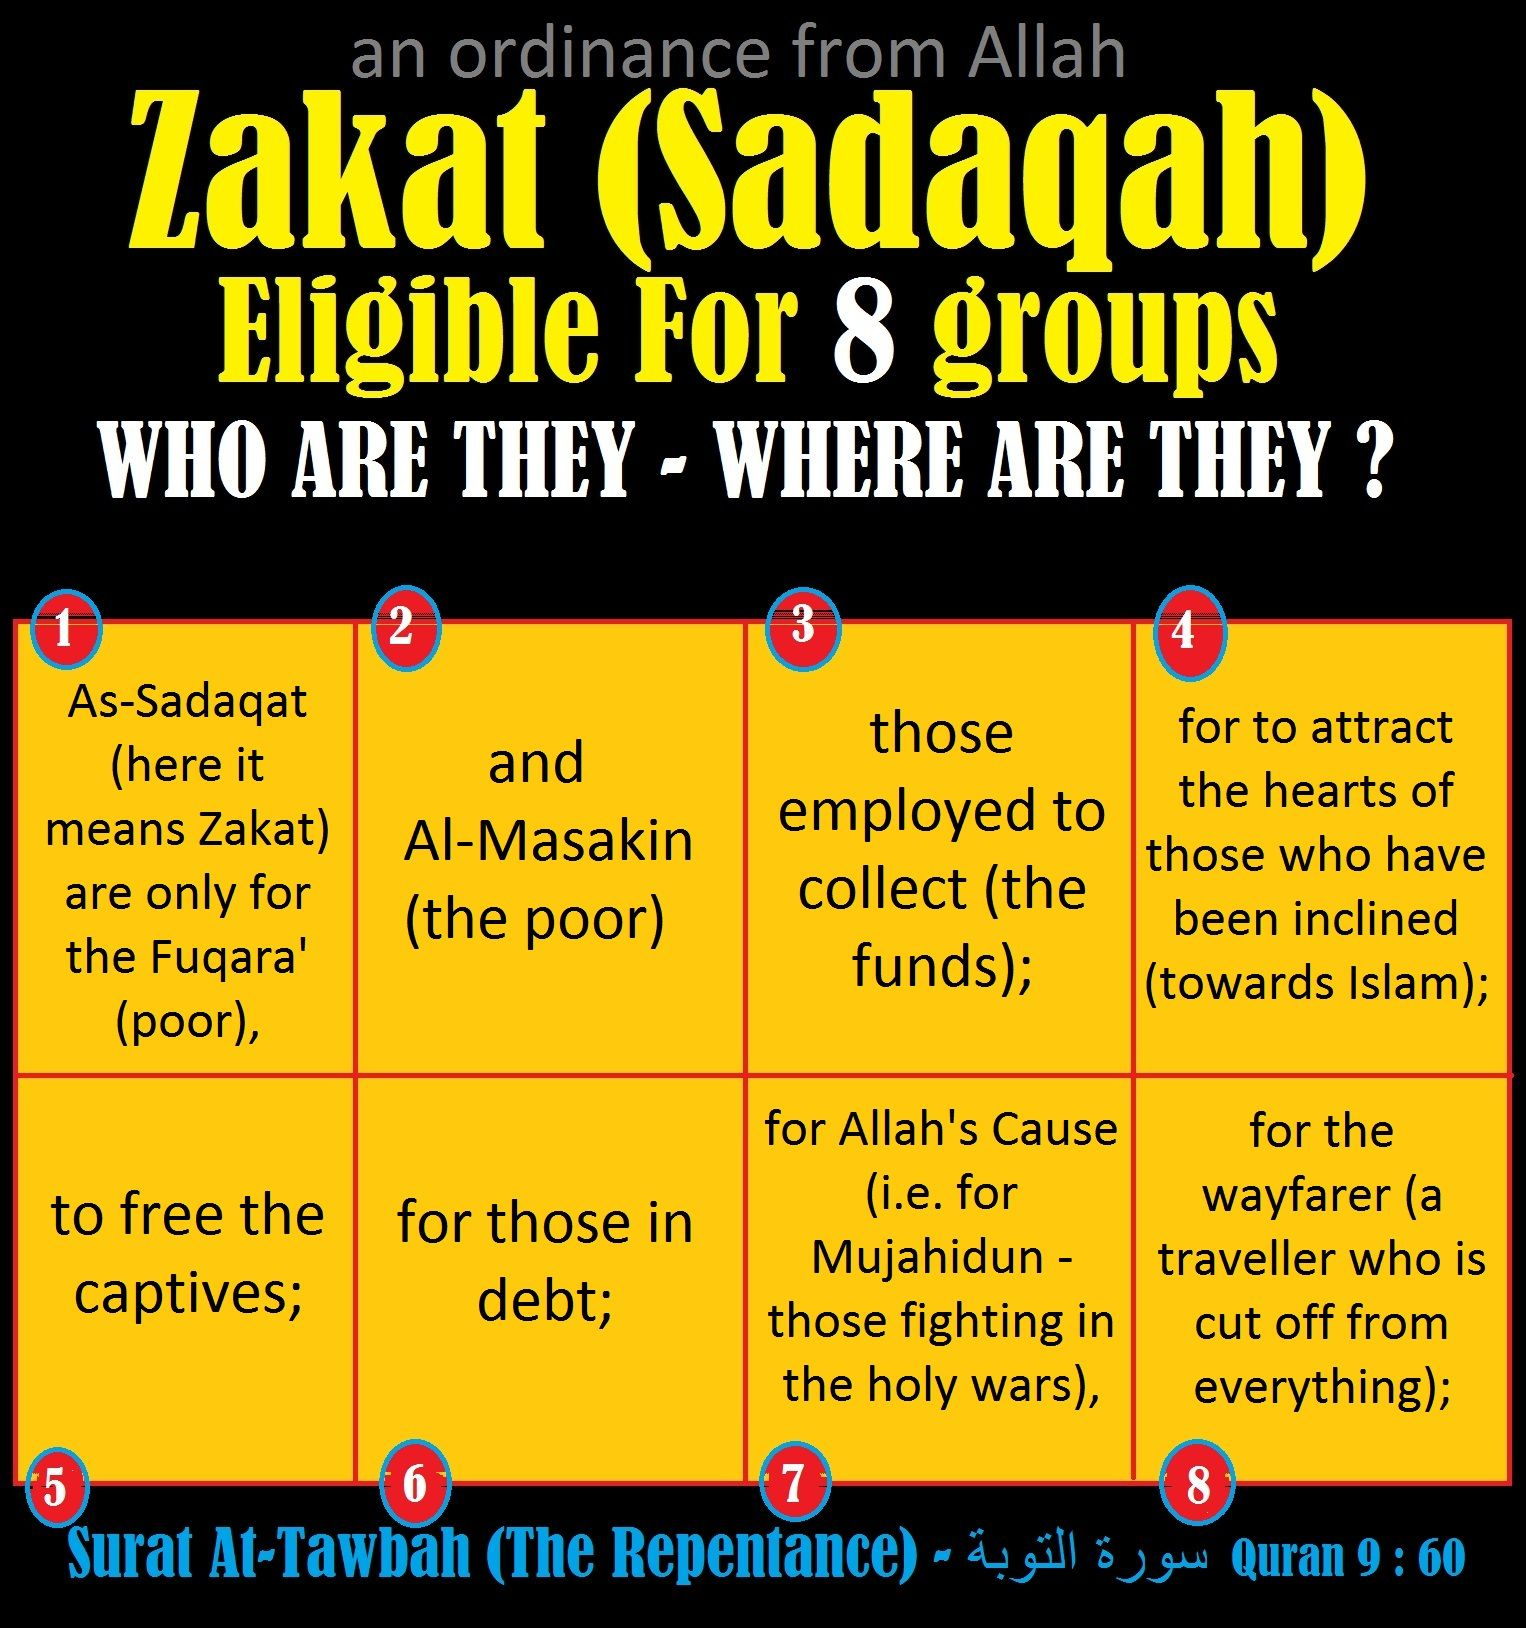 Zakat (Sadaqah) Eligible For 8 groups : who are they and